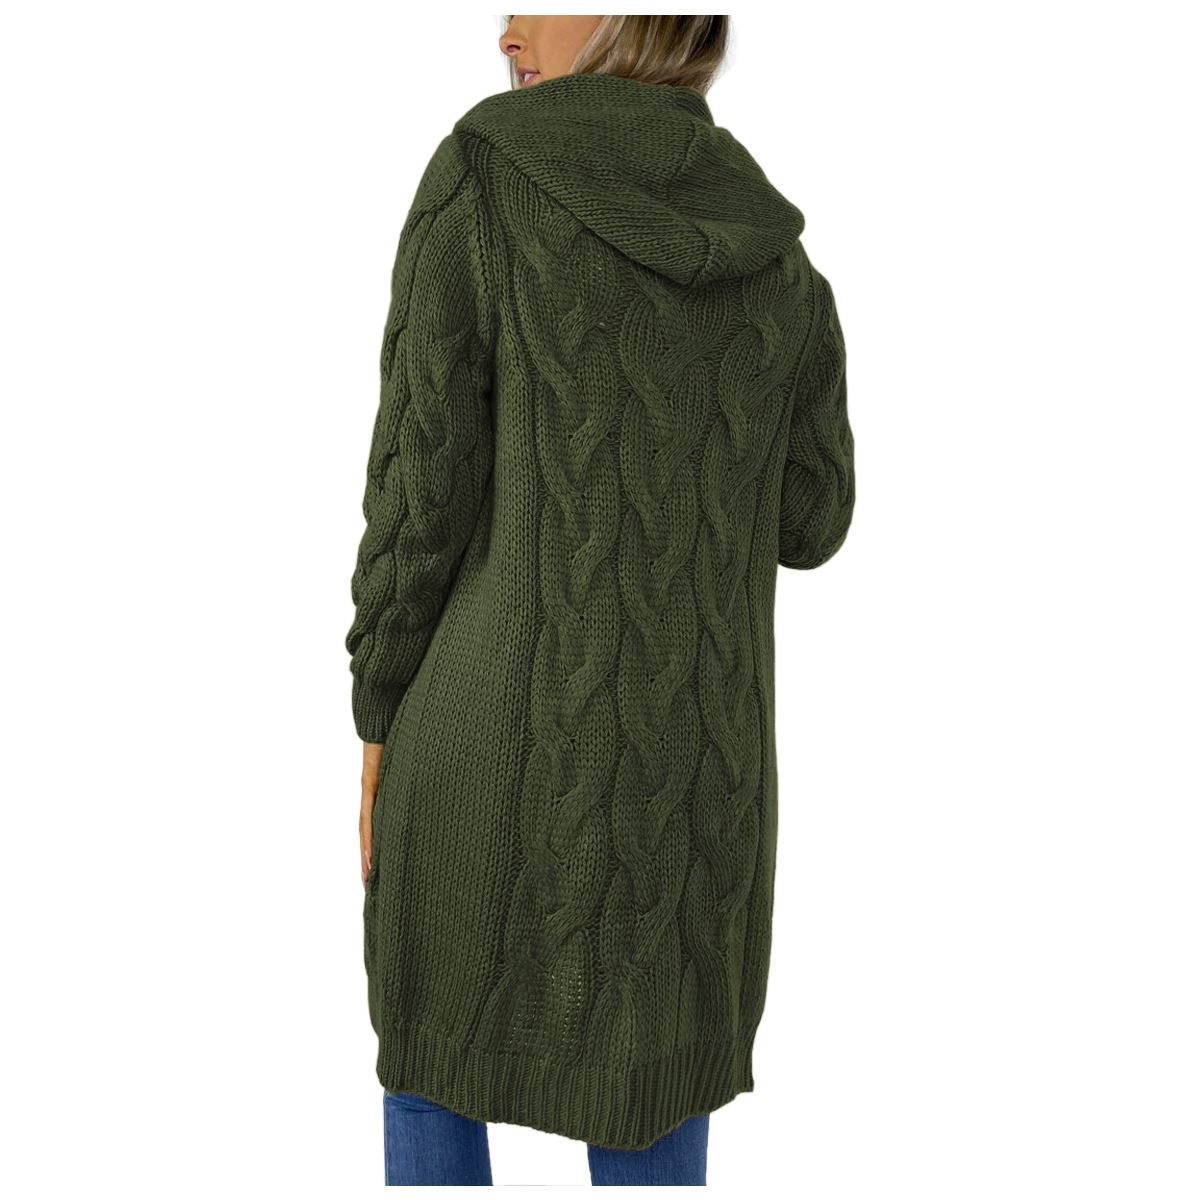 Ladies-Cable-Knitted-Hooded-Open-Longline-Cardigan-Winter-Oversized-Jacket-Top thumbnail 19